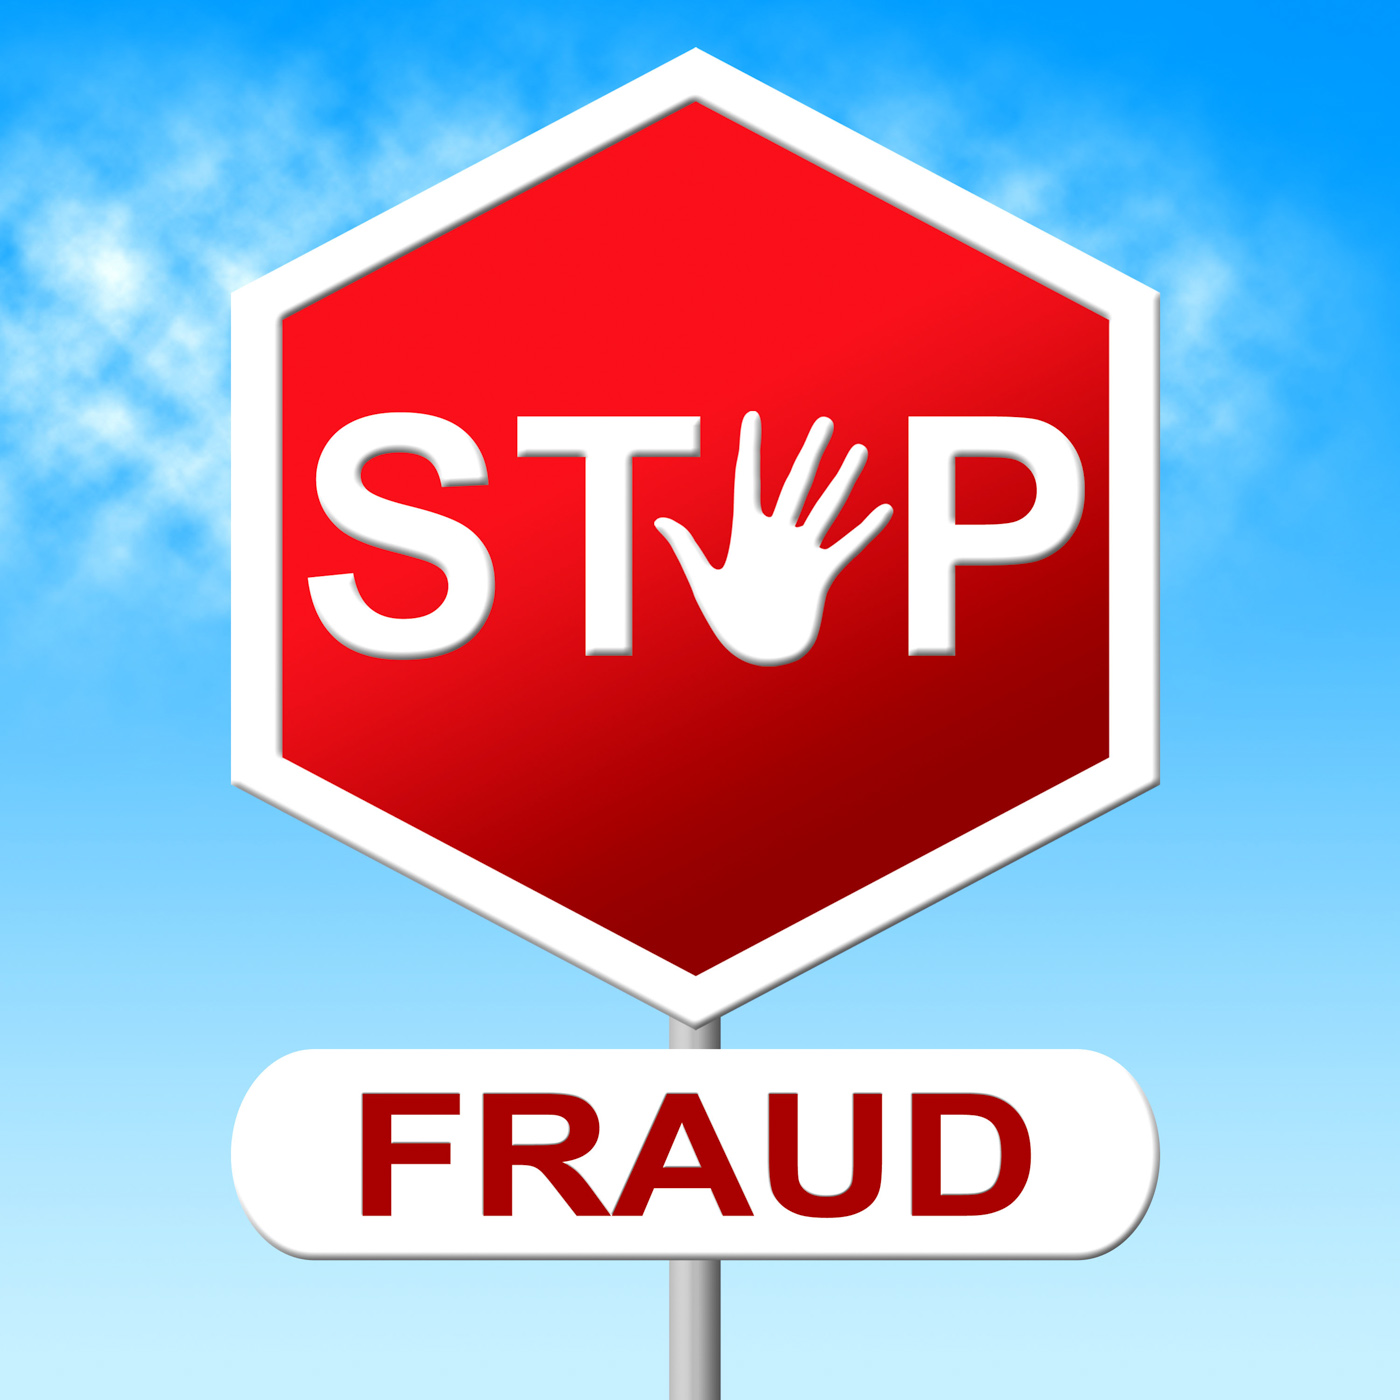 Fraud Stop Represents Warning Sign And Cheat, Caution, Prohibit, Warning, Swindle, HQ Photo